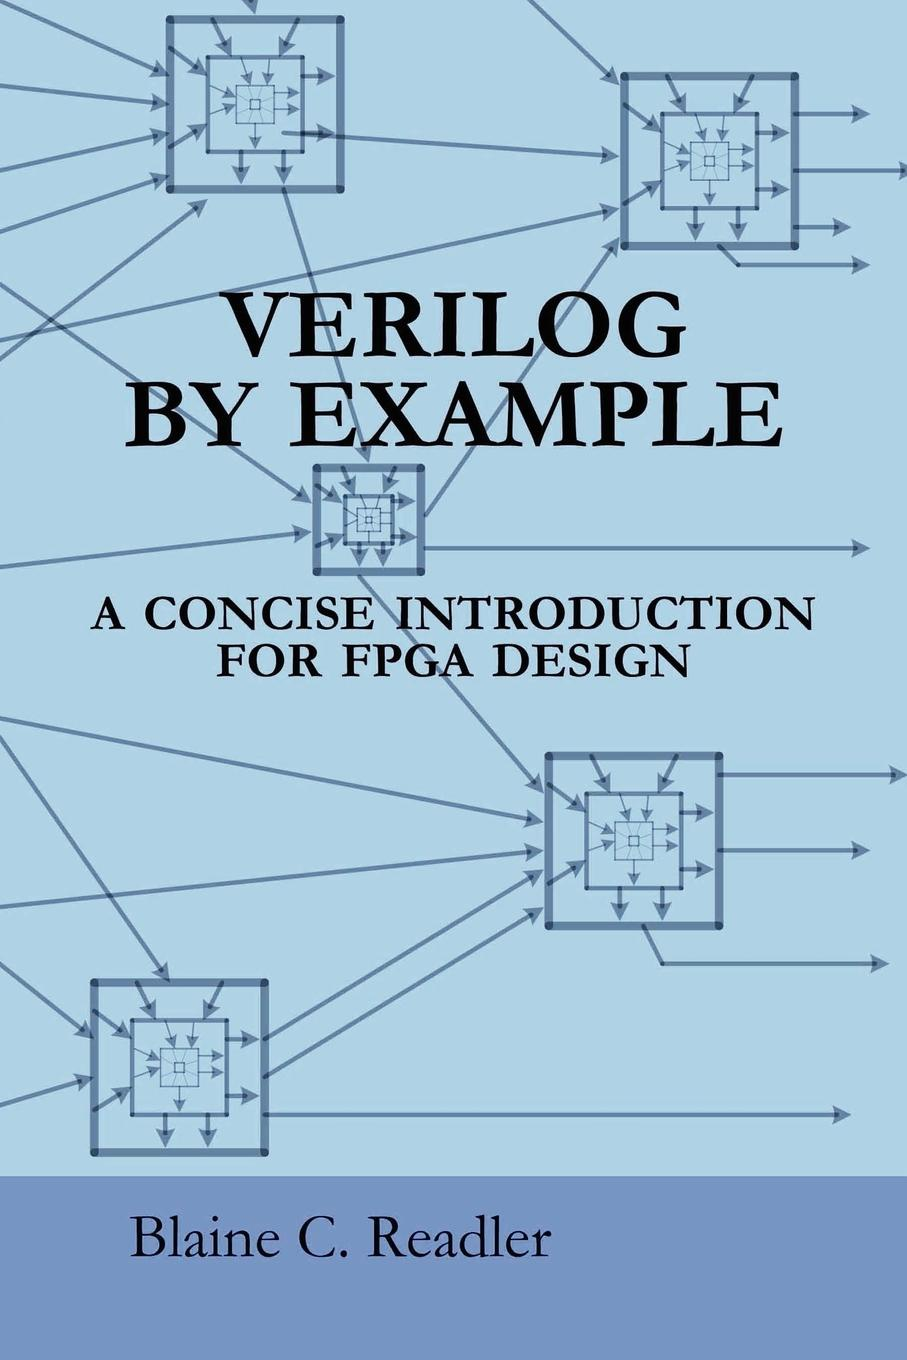 лучшая цена Blaine Readler Verilog by Example. A Concise Introduction for FPGA Design